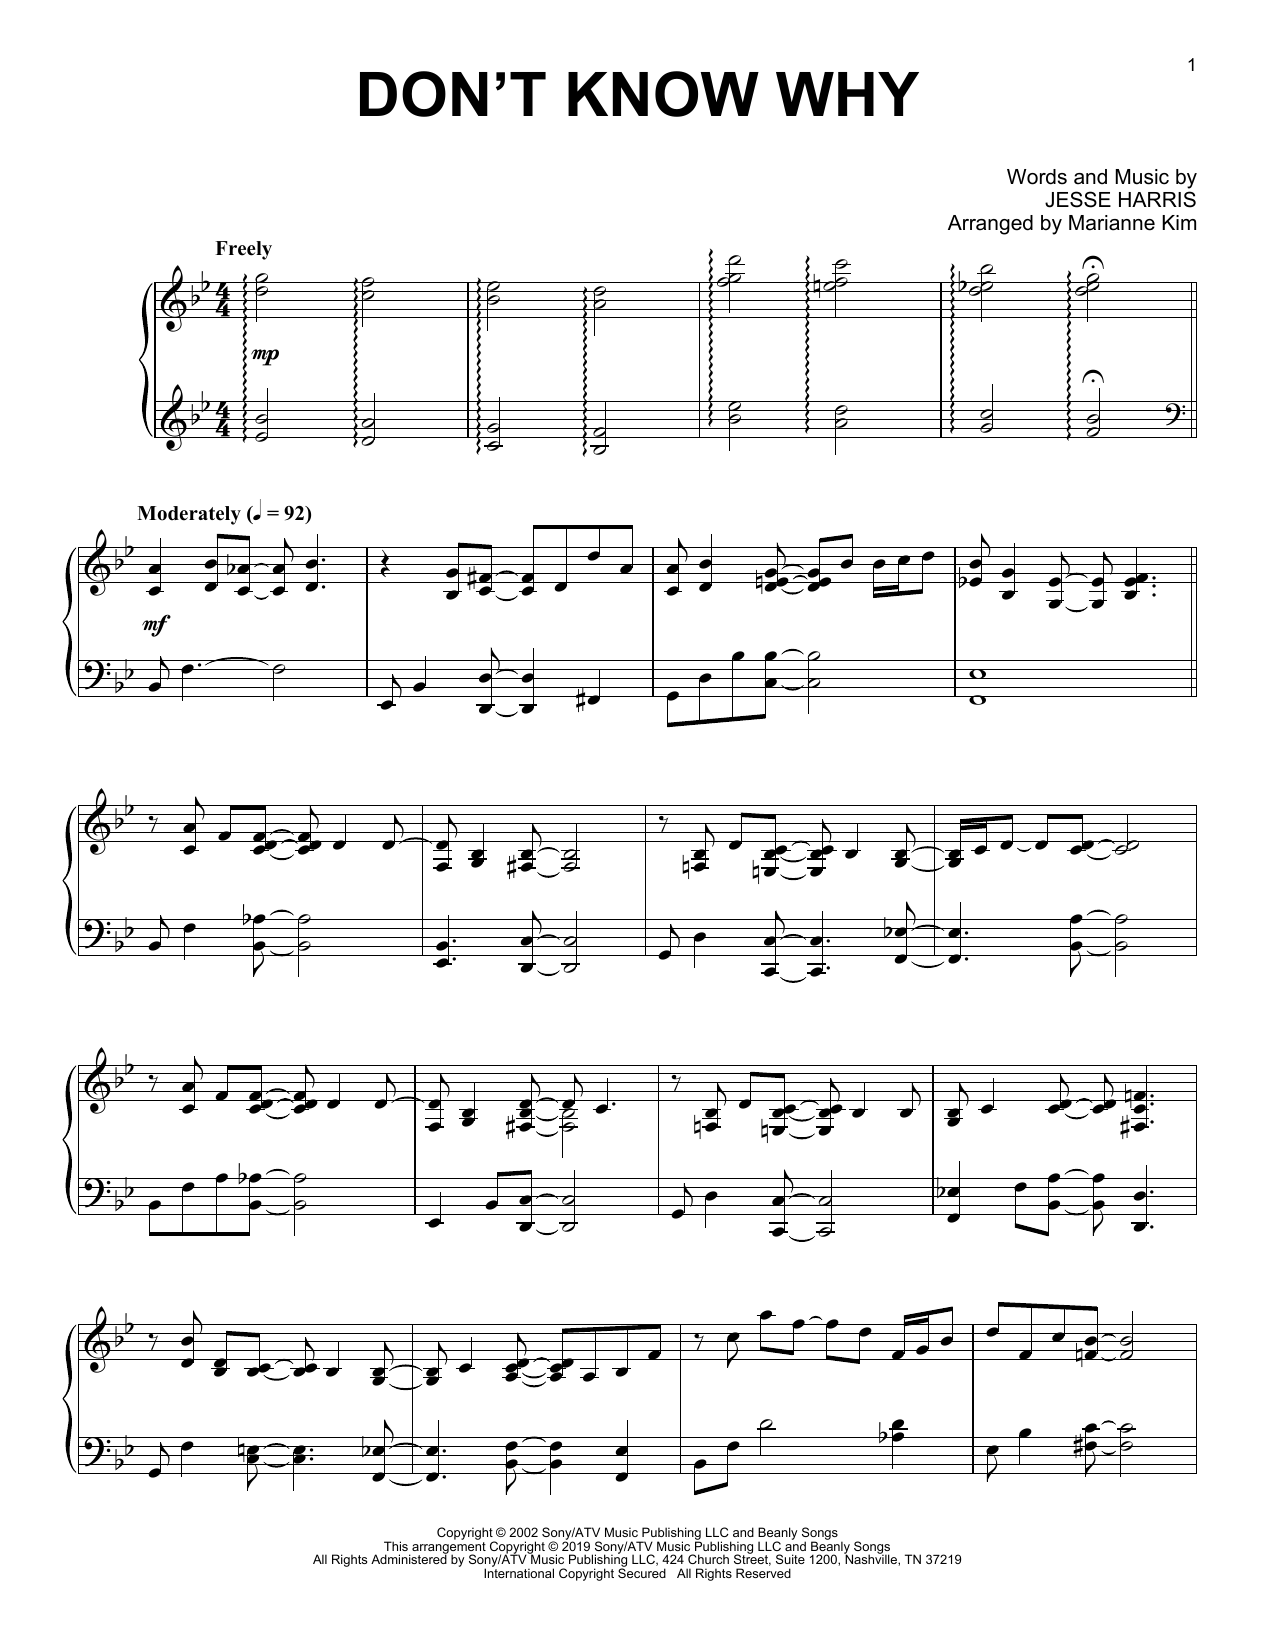 Norah Jones Don't Know Why (arr. Marianne Kim) sheet music notes and chords. Download Printable PDF.